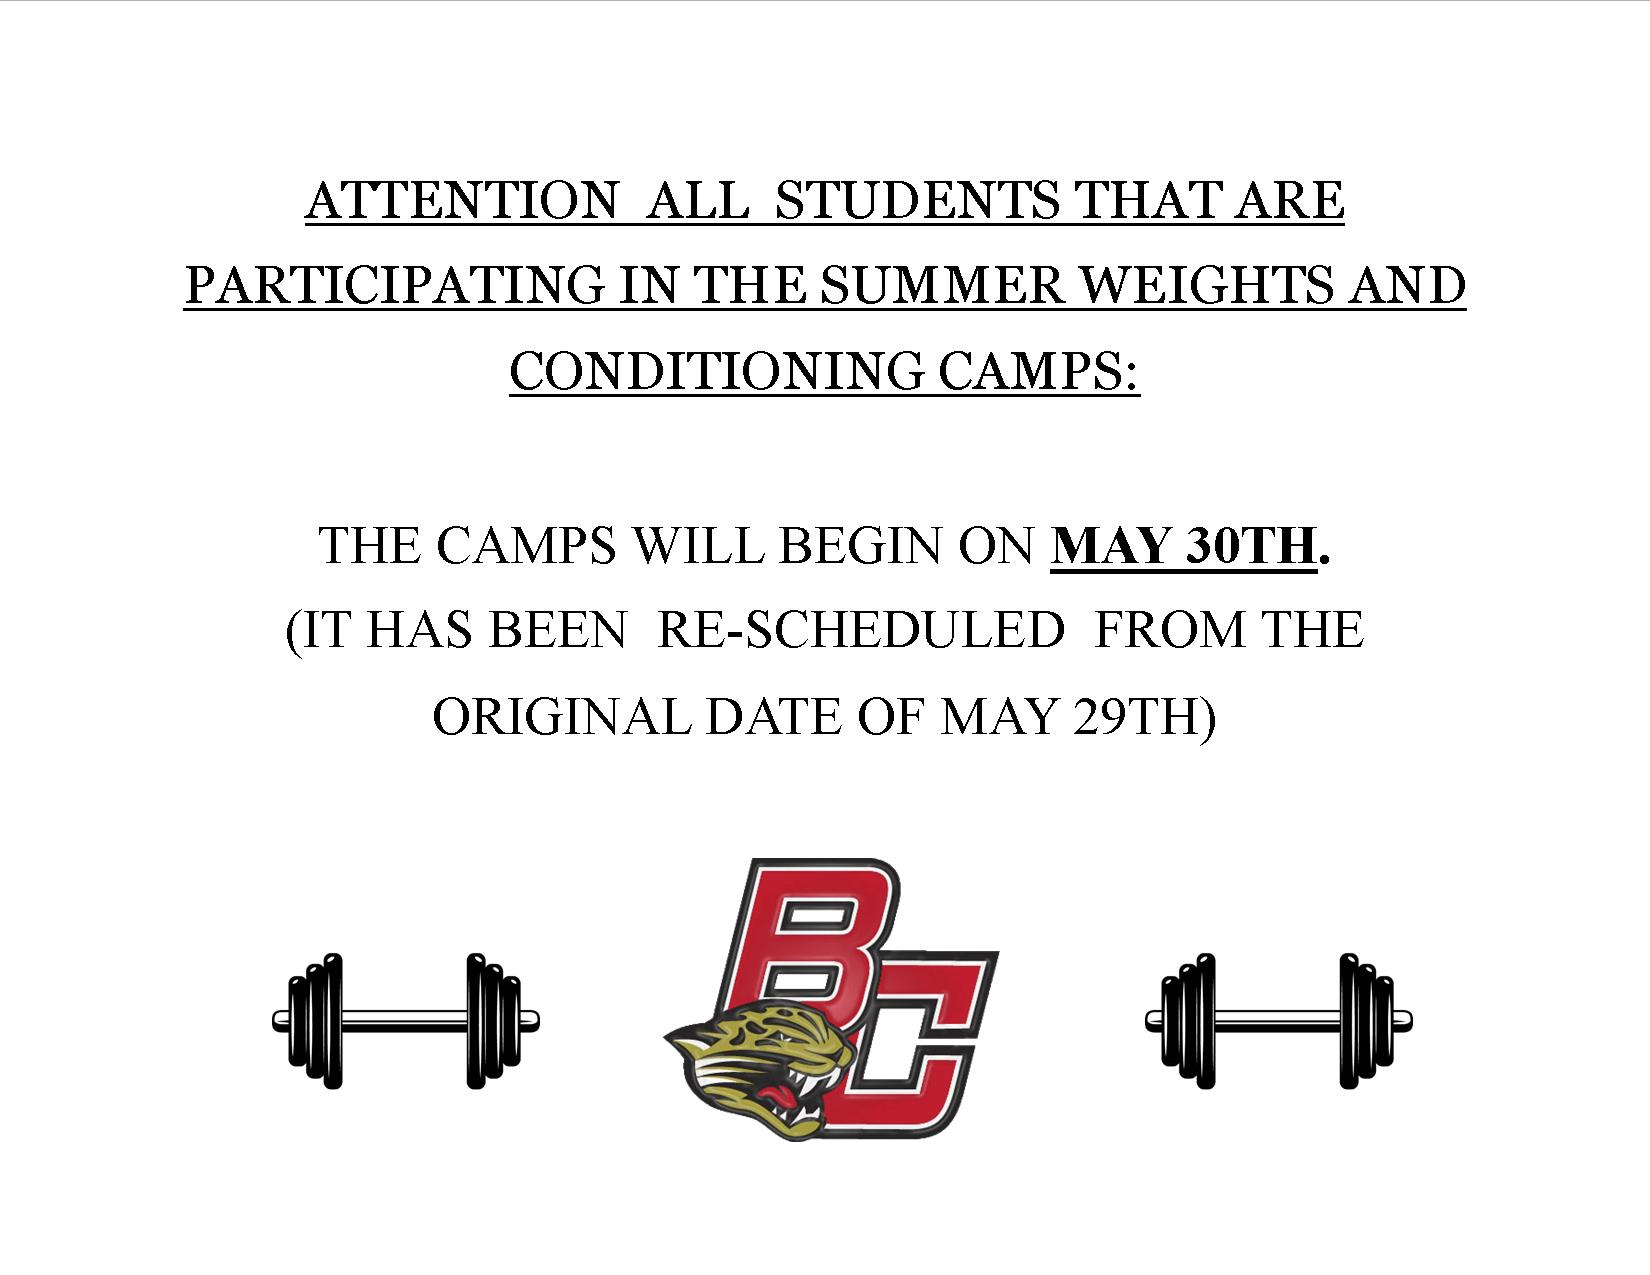 Summer Weights and Conditioning Camp Date Change